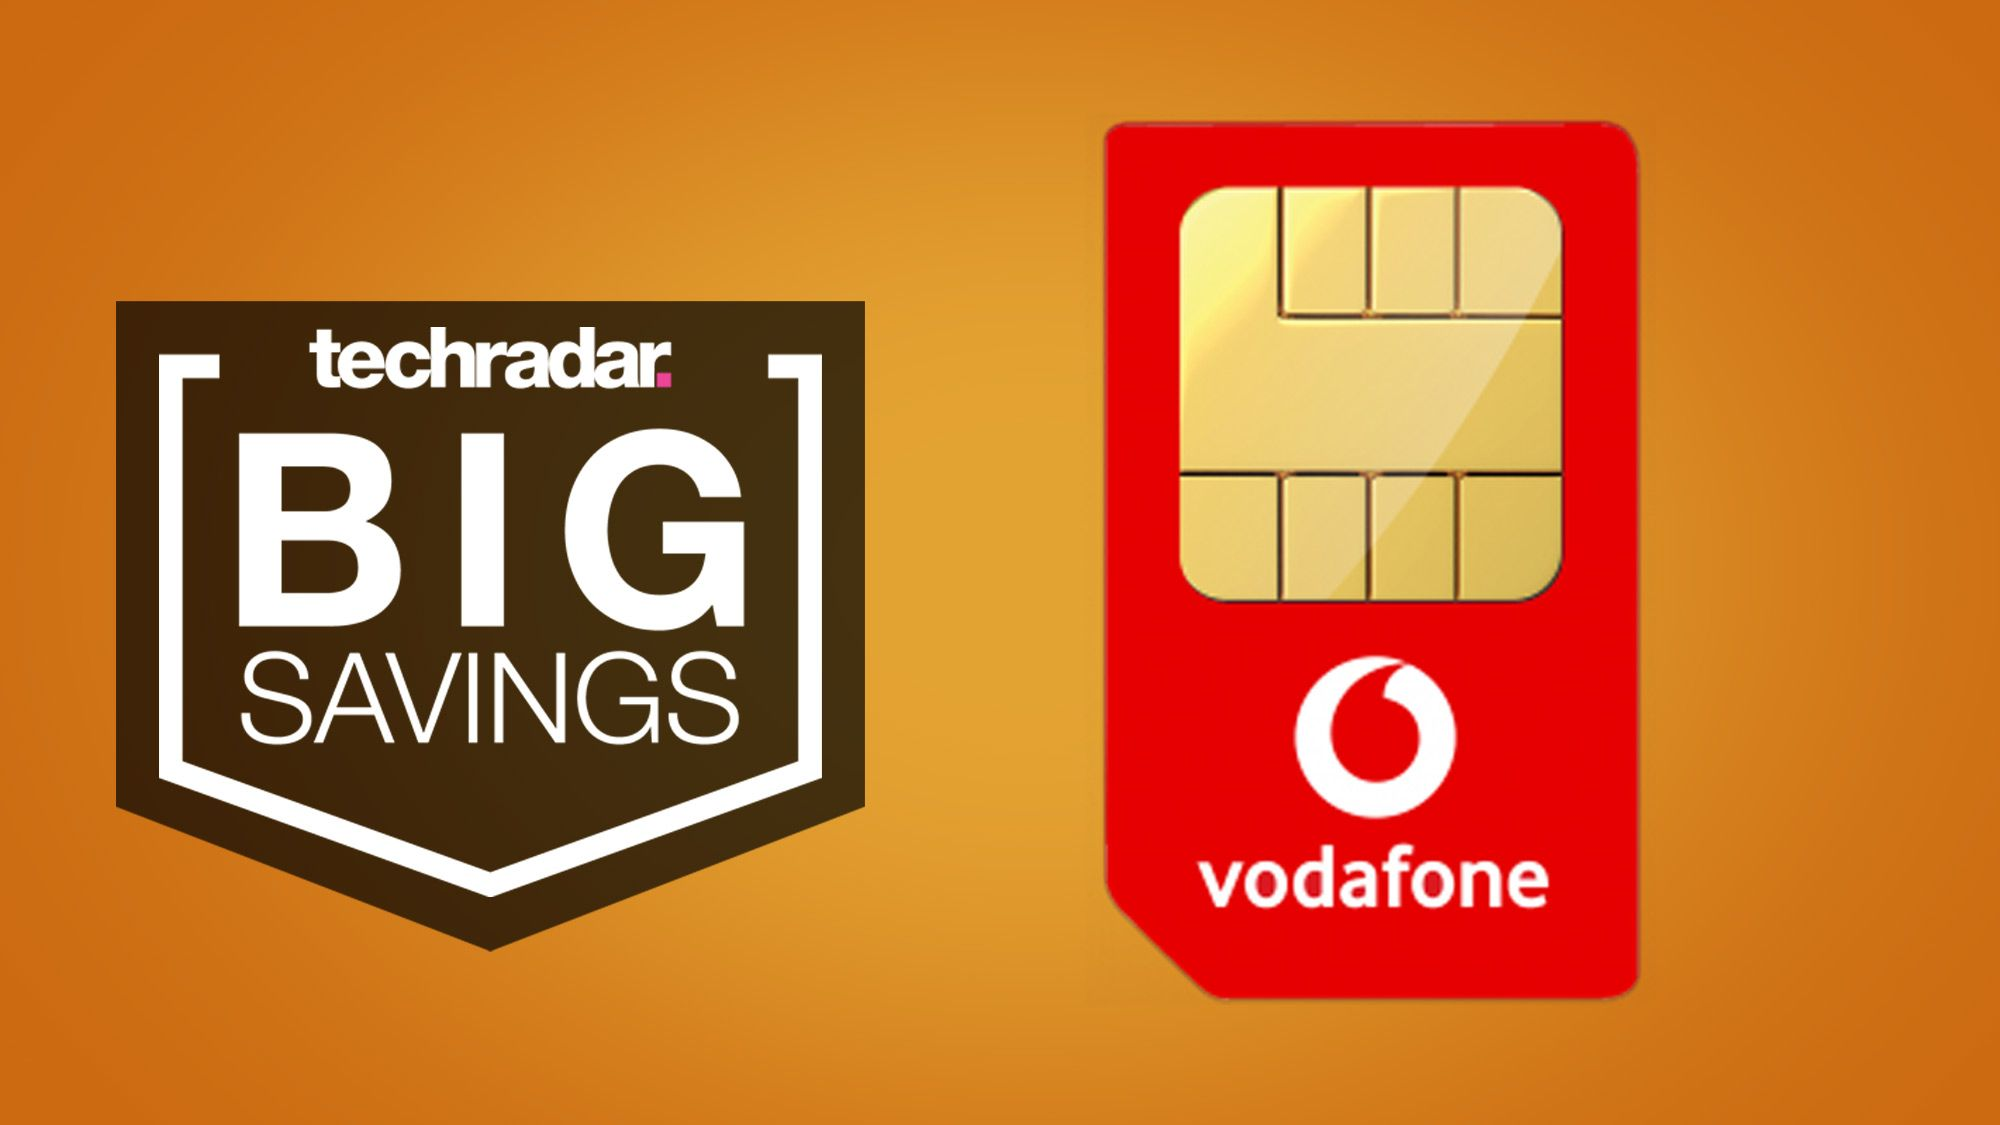 These Vodafone Sim Only Deals Offer 60gb Of Data From An Effective Low Of 9 50 A Month Tech Radar Full Story Https In 2020 Phone Deals Mobile Phone Deals Vodafone